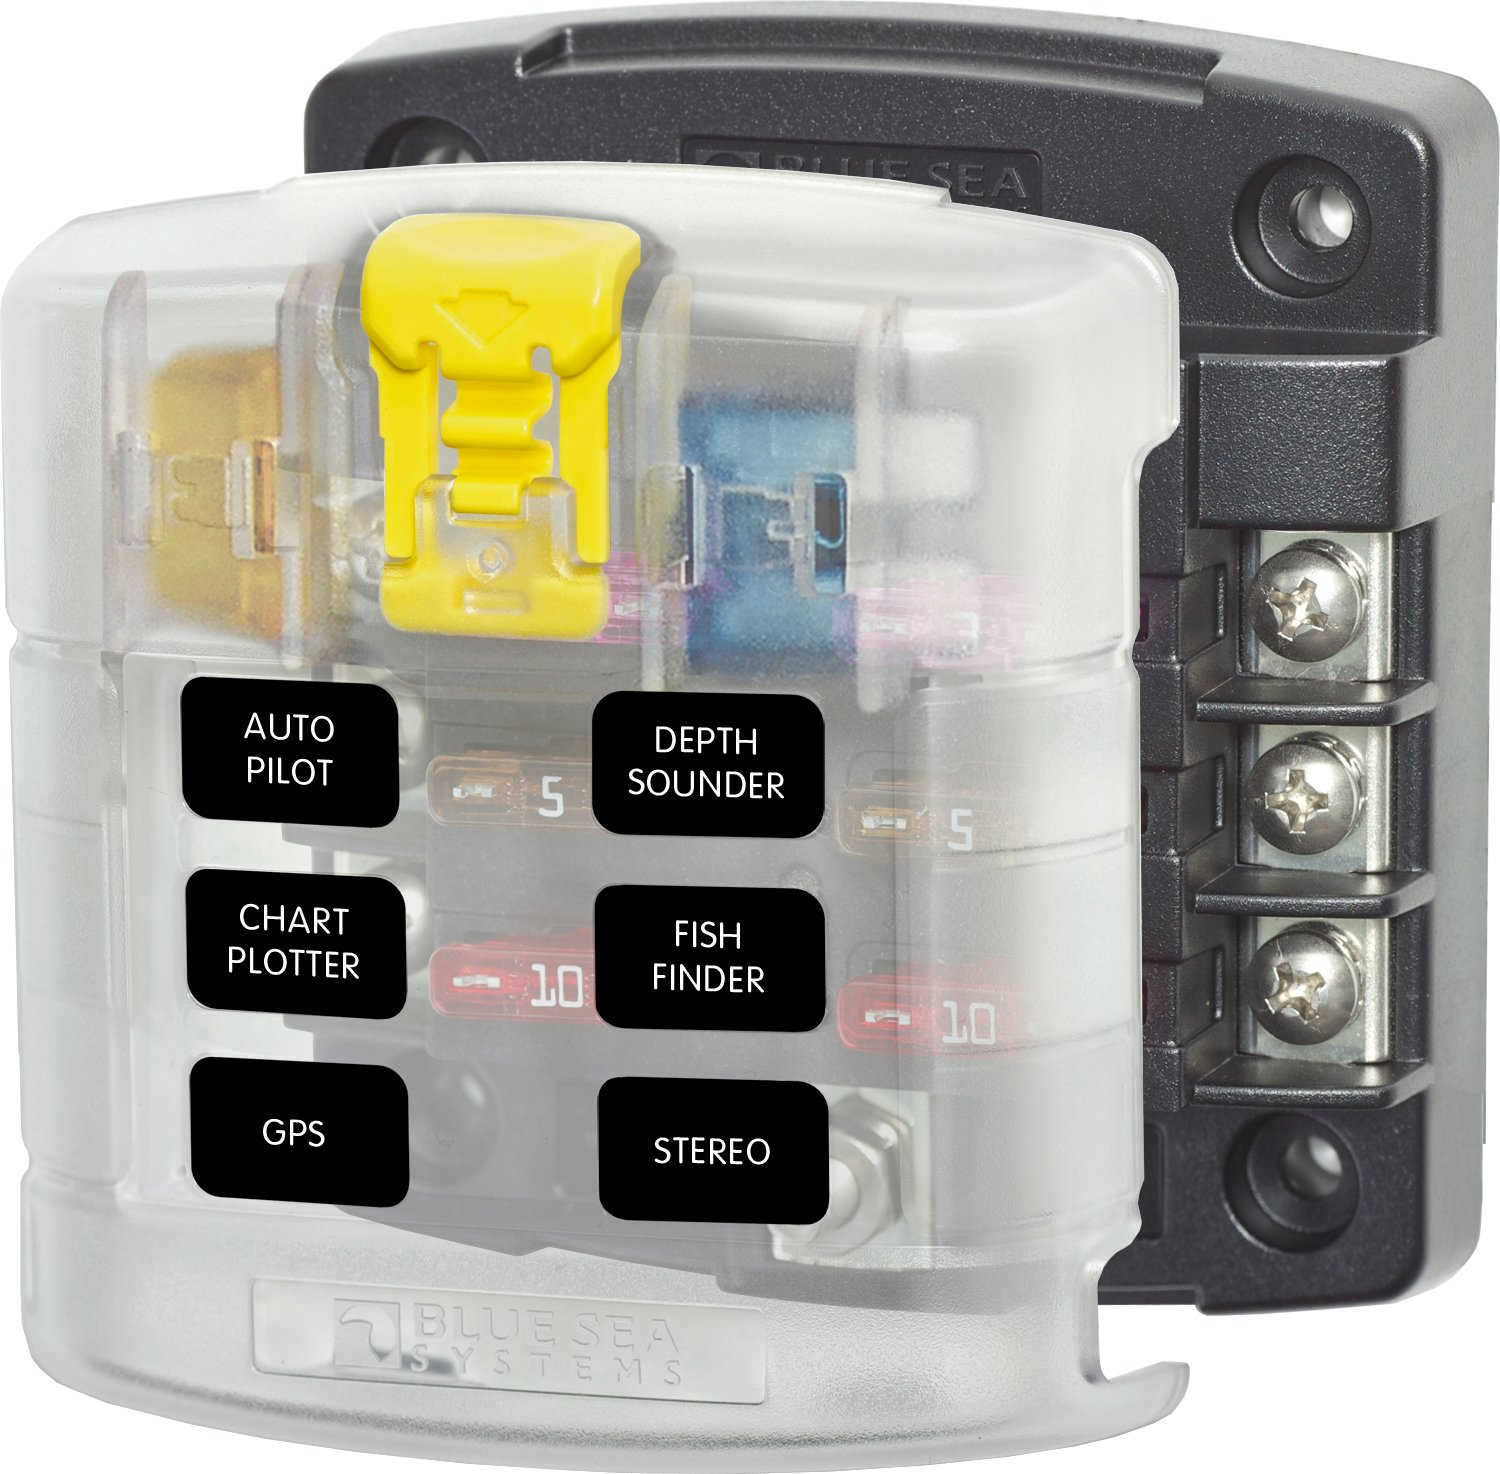 Blue Sea Systems ST Blade Fuse Block - 6 Circuits with Cover, Electrical  Equipment - Amazon Canada